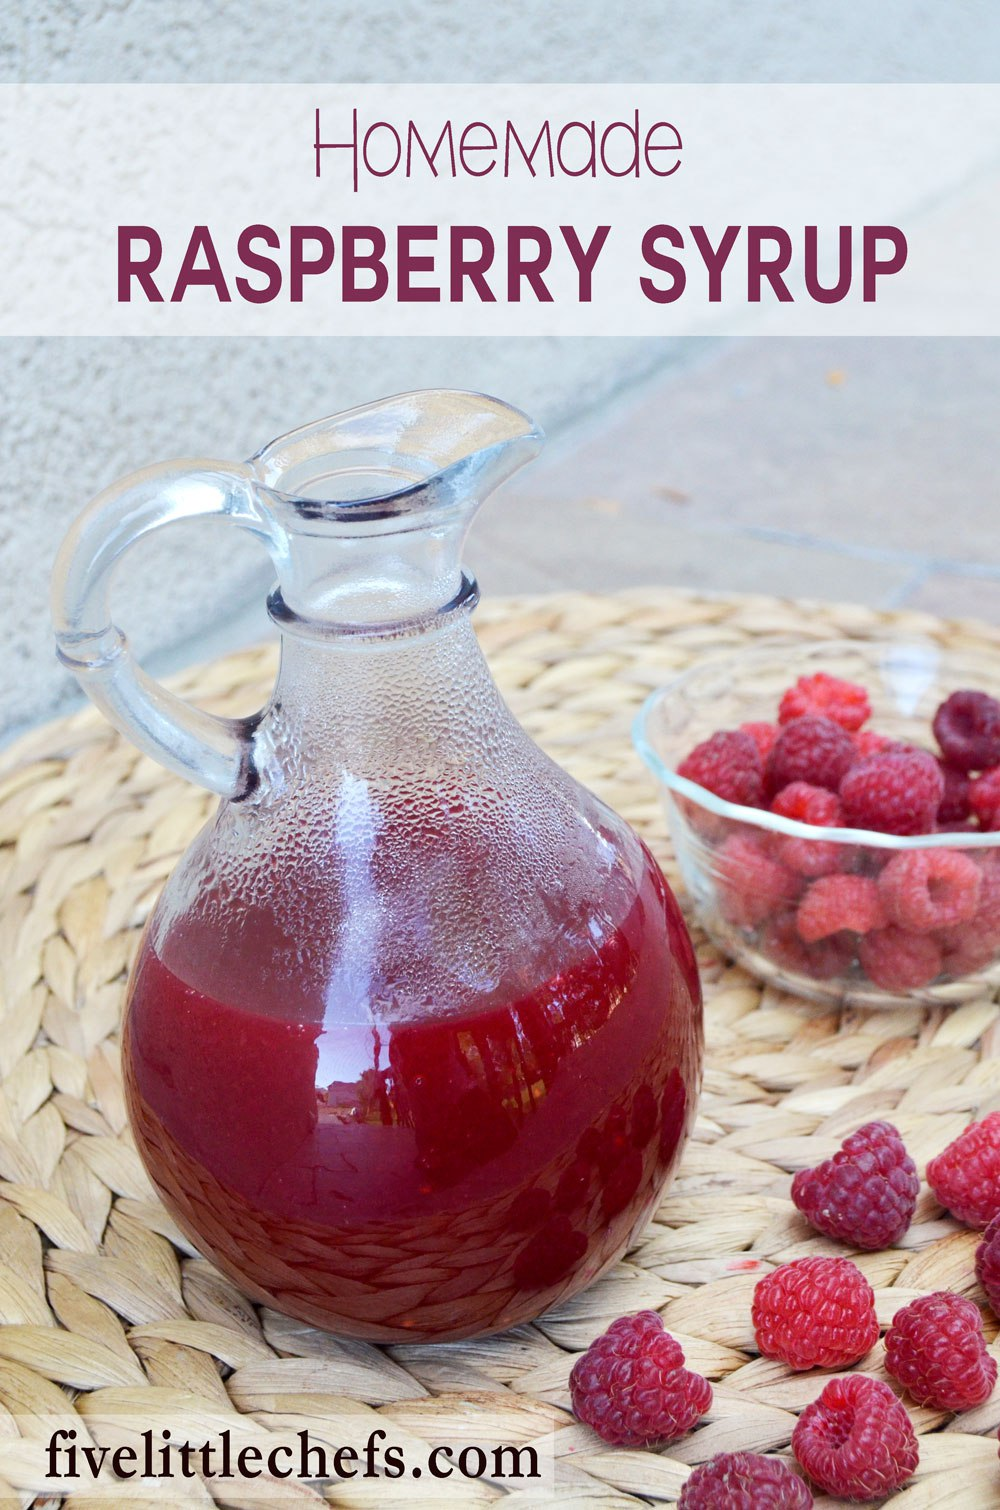 Homemade raspberry syrup is sweet which makes it perfect to put on french toast, pancakes or waffles. It is also delicious on top of a bowl of ice cream. This is an easy recipe to whip up!